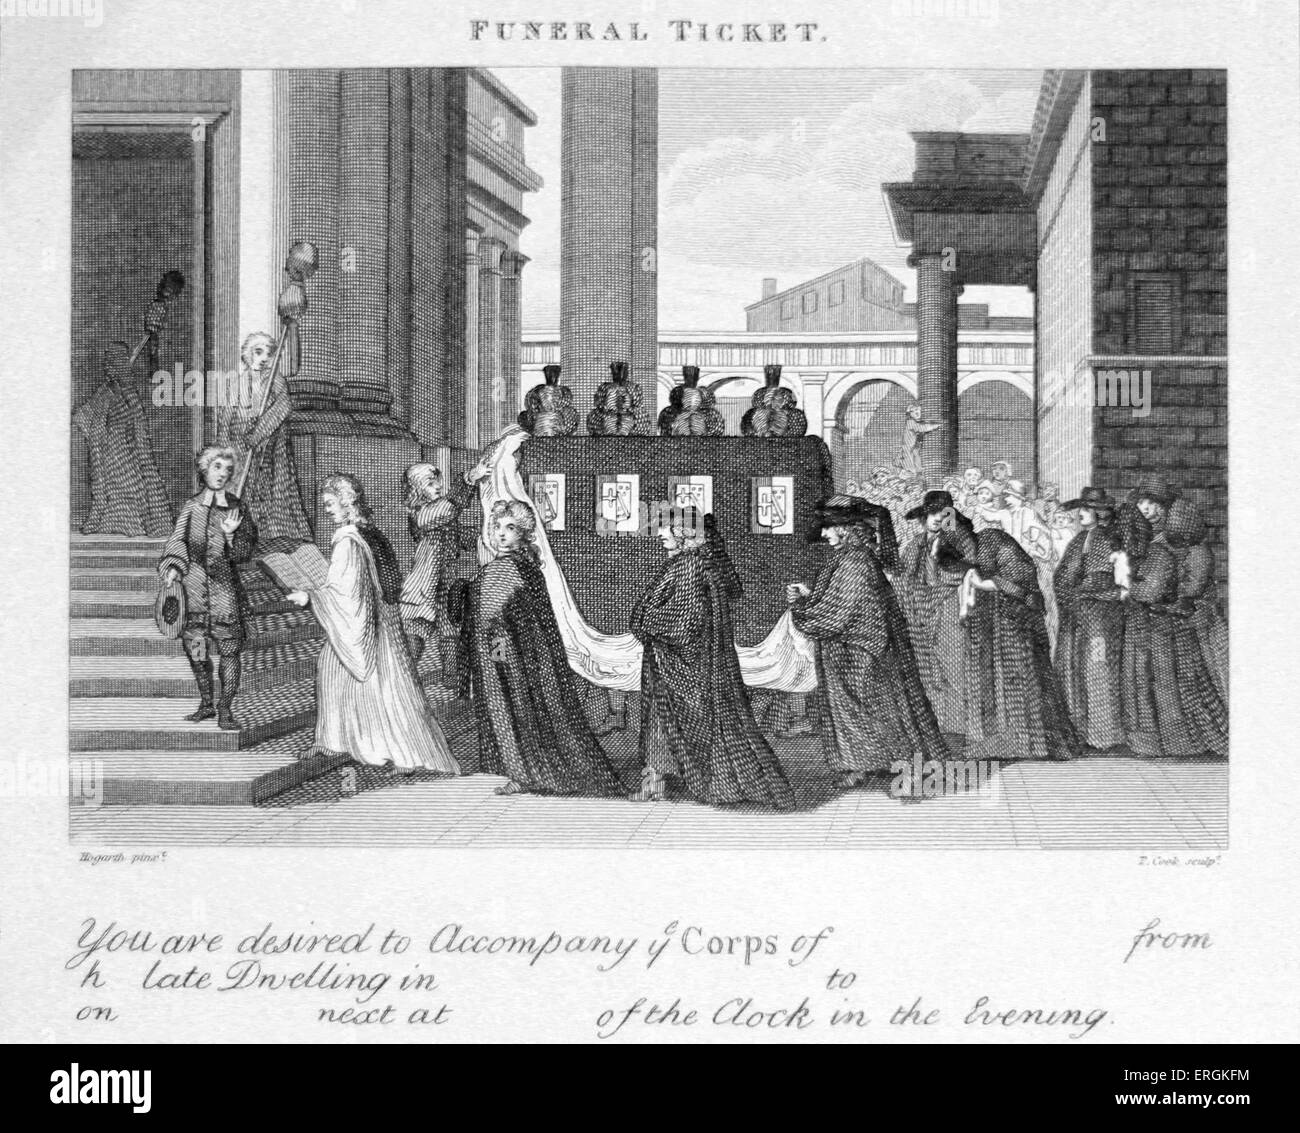 Funeral Ticket by William Hogarth. Engraved by Thomas Cook. Caption reads: 'You are desired to accompany the - Stock Image